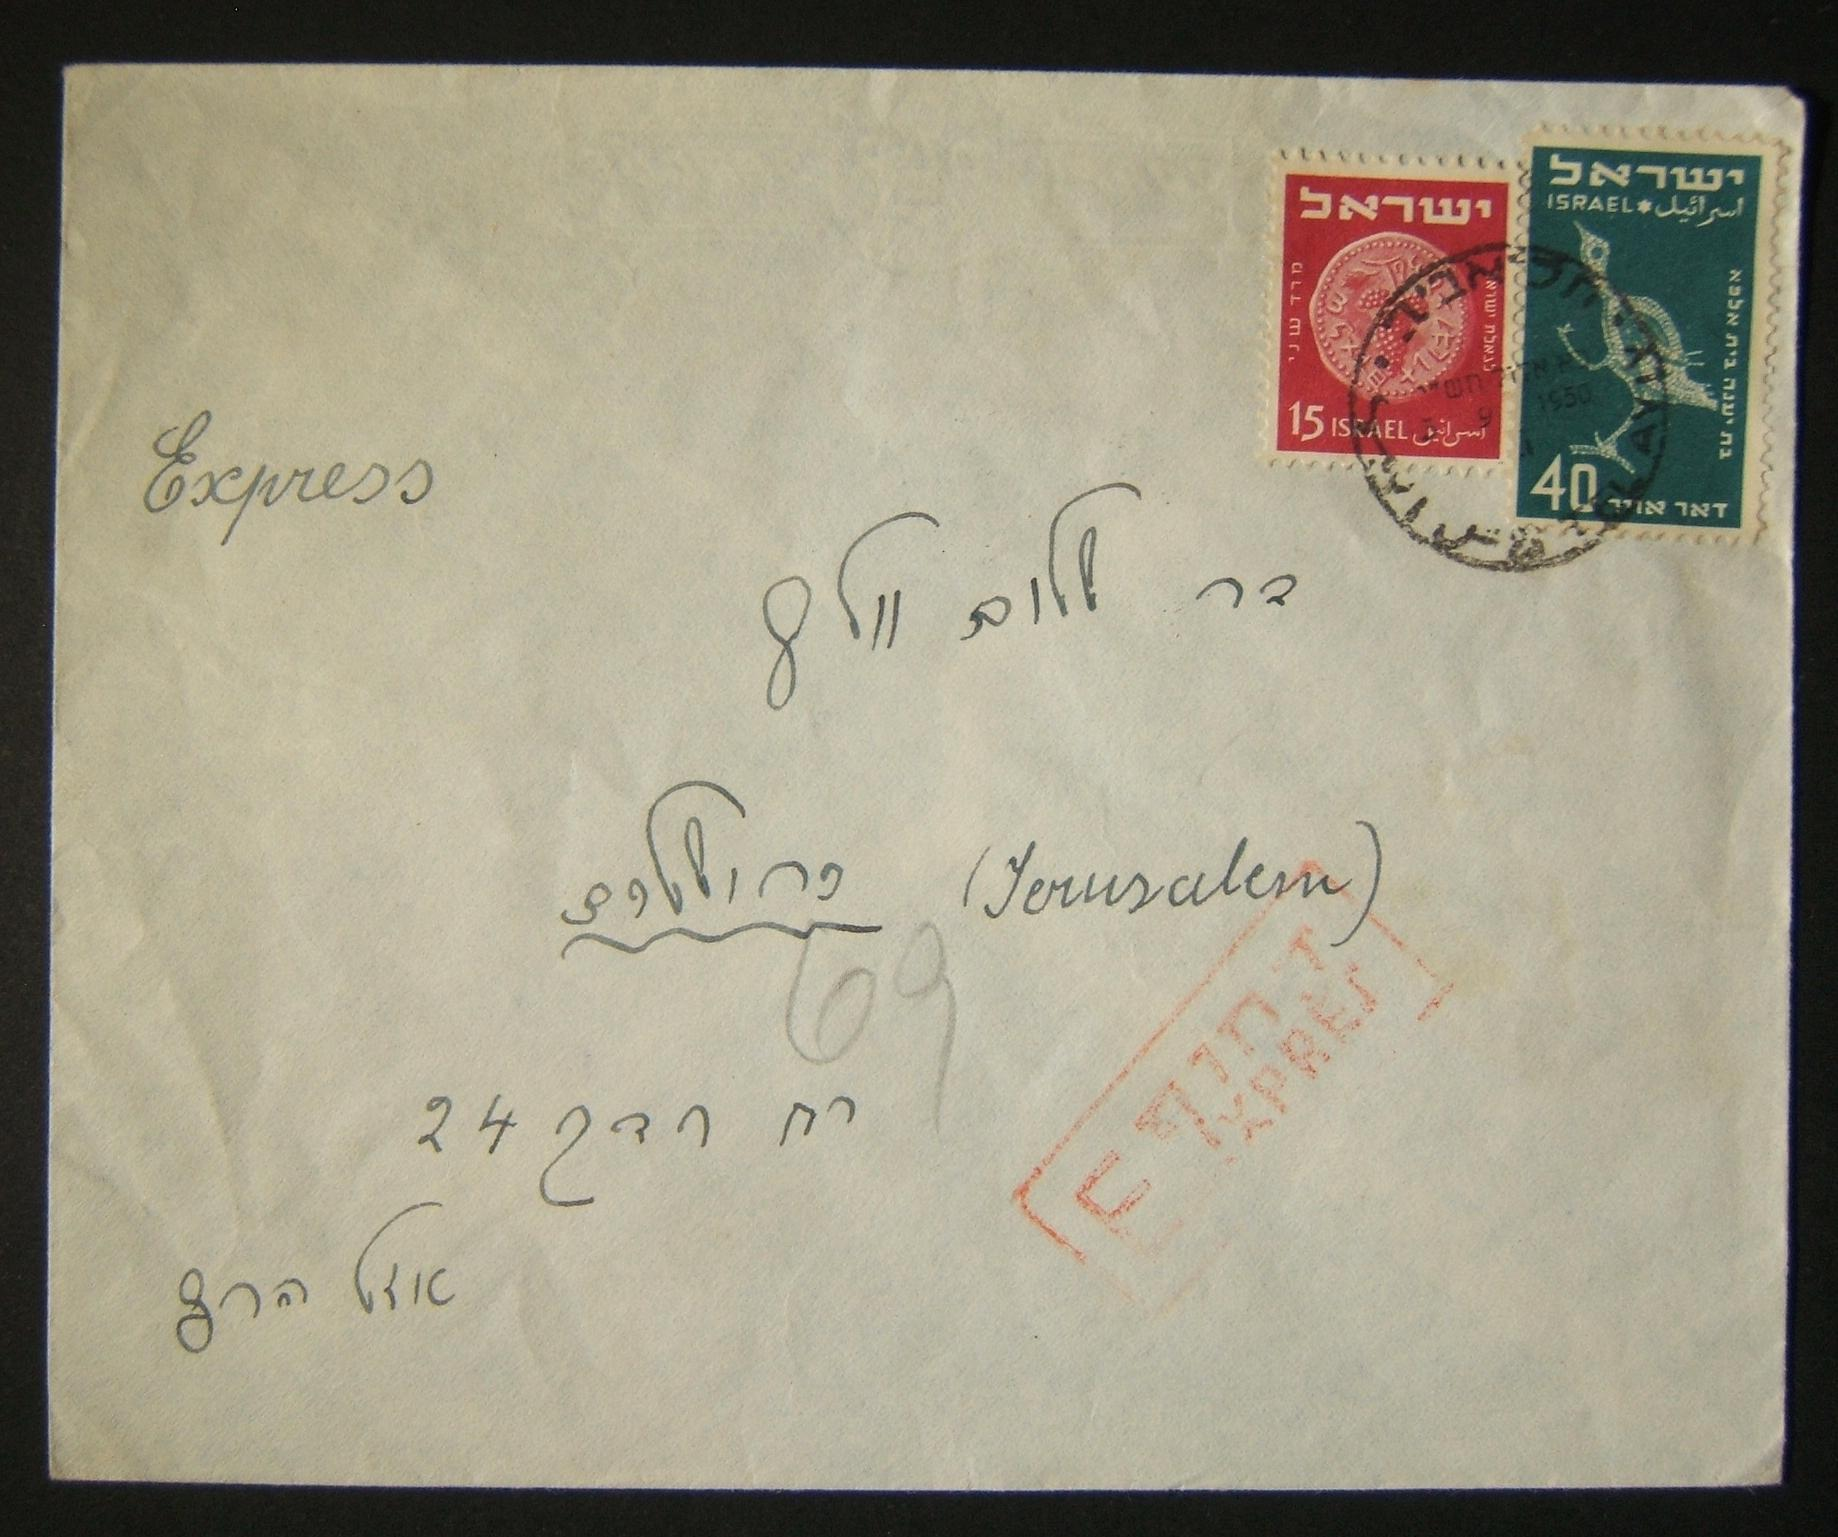 1950 1st airmail / PO's, rates & routes: 3-9-1950